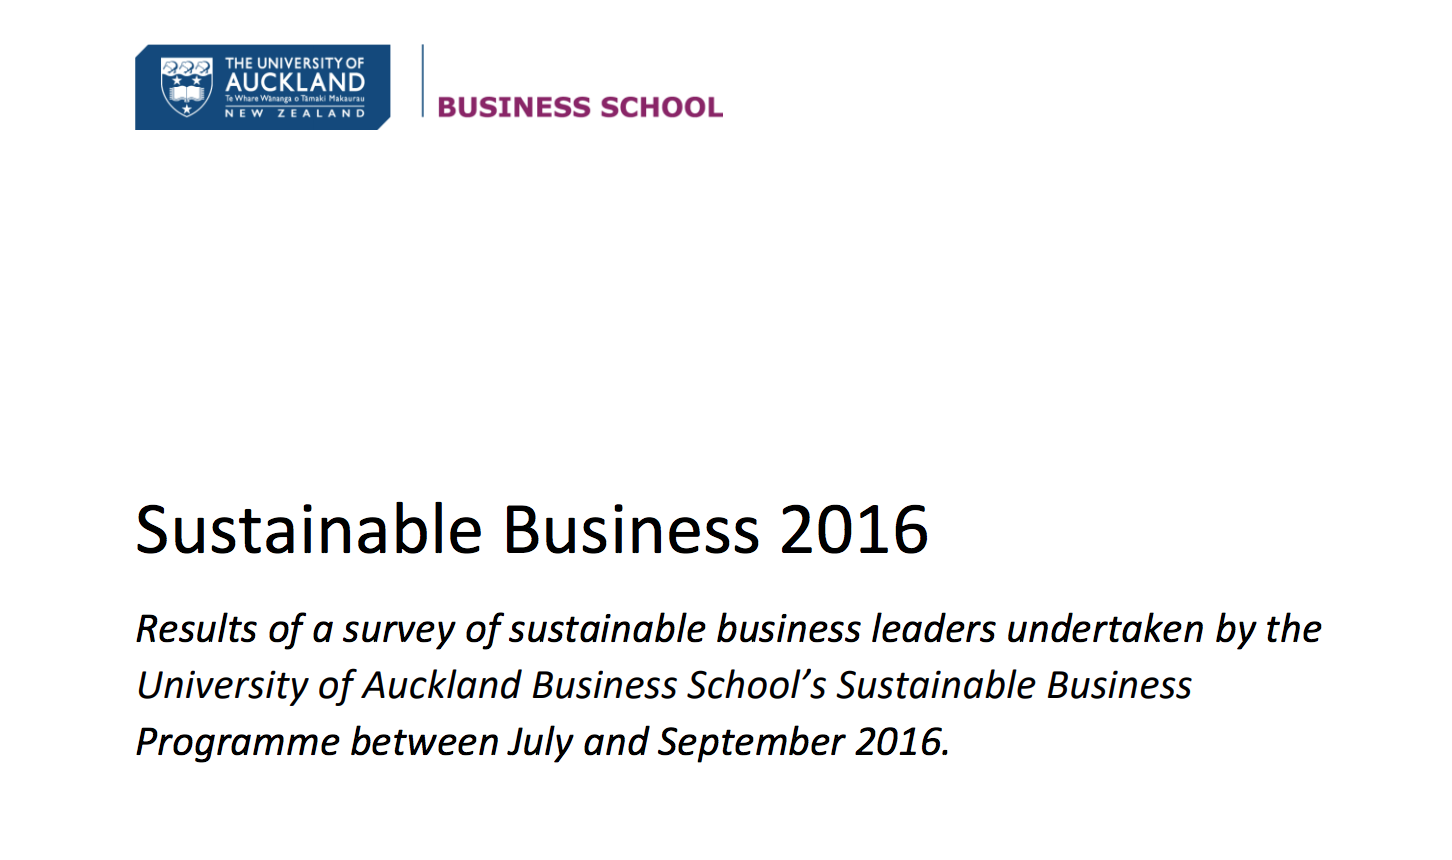 AUCKLAND UNIVERSITY REPORT ON SUSTAINABLE BUSINESS 2016